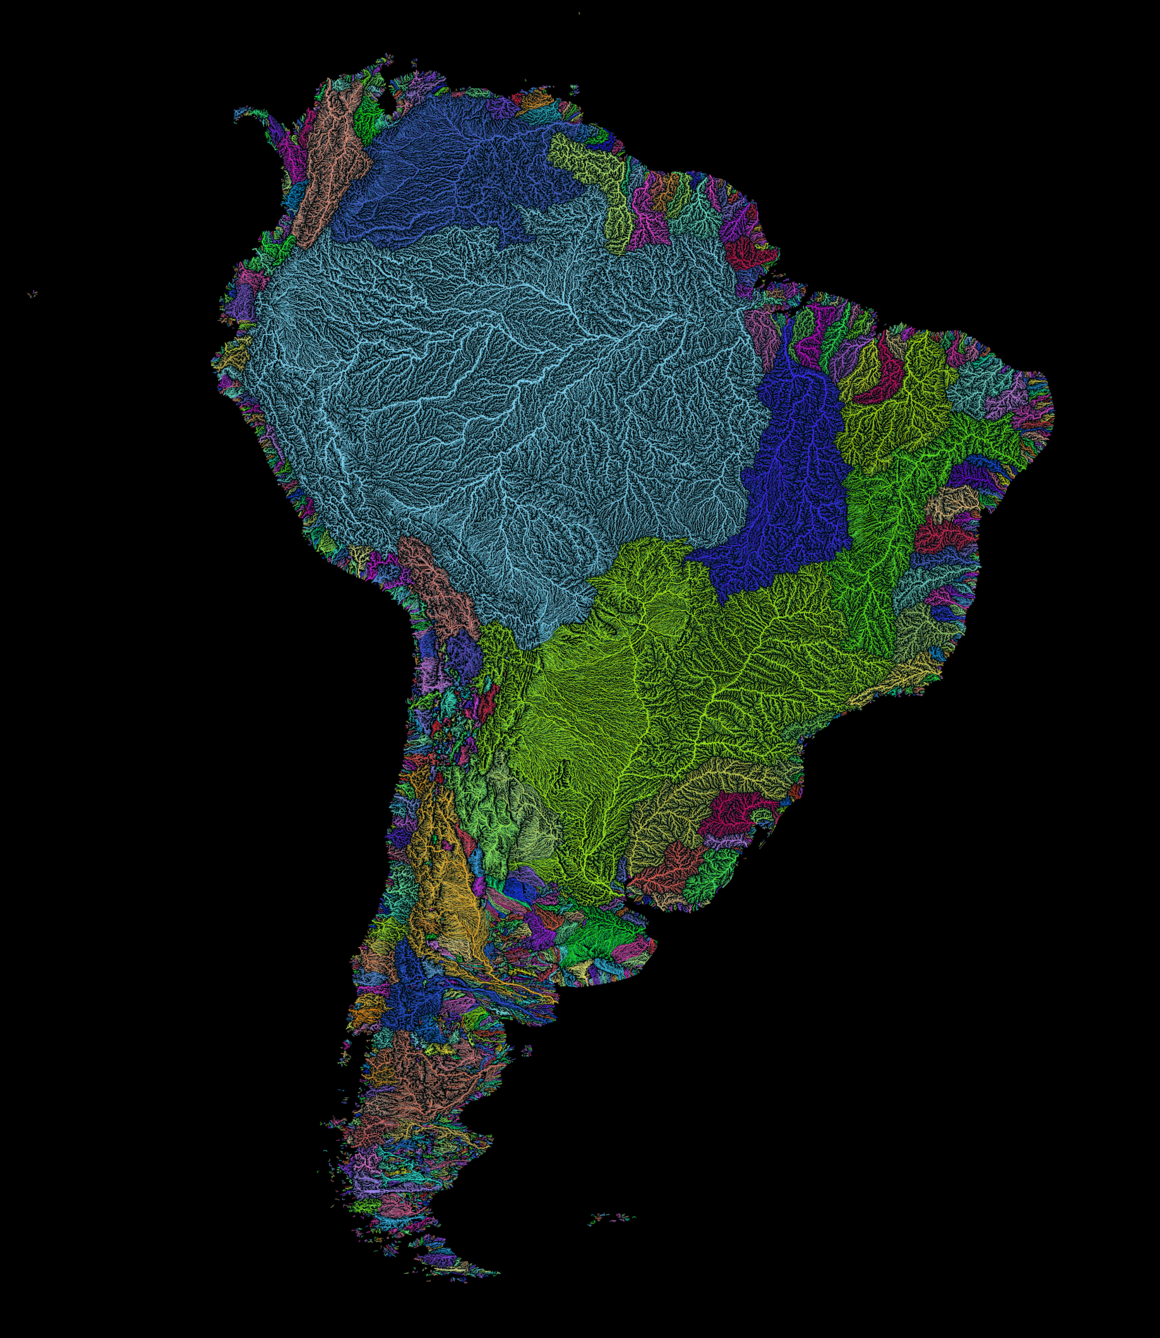 River basins of South America.